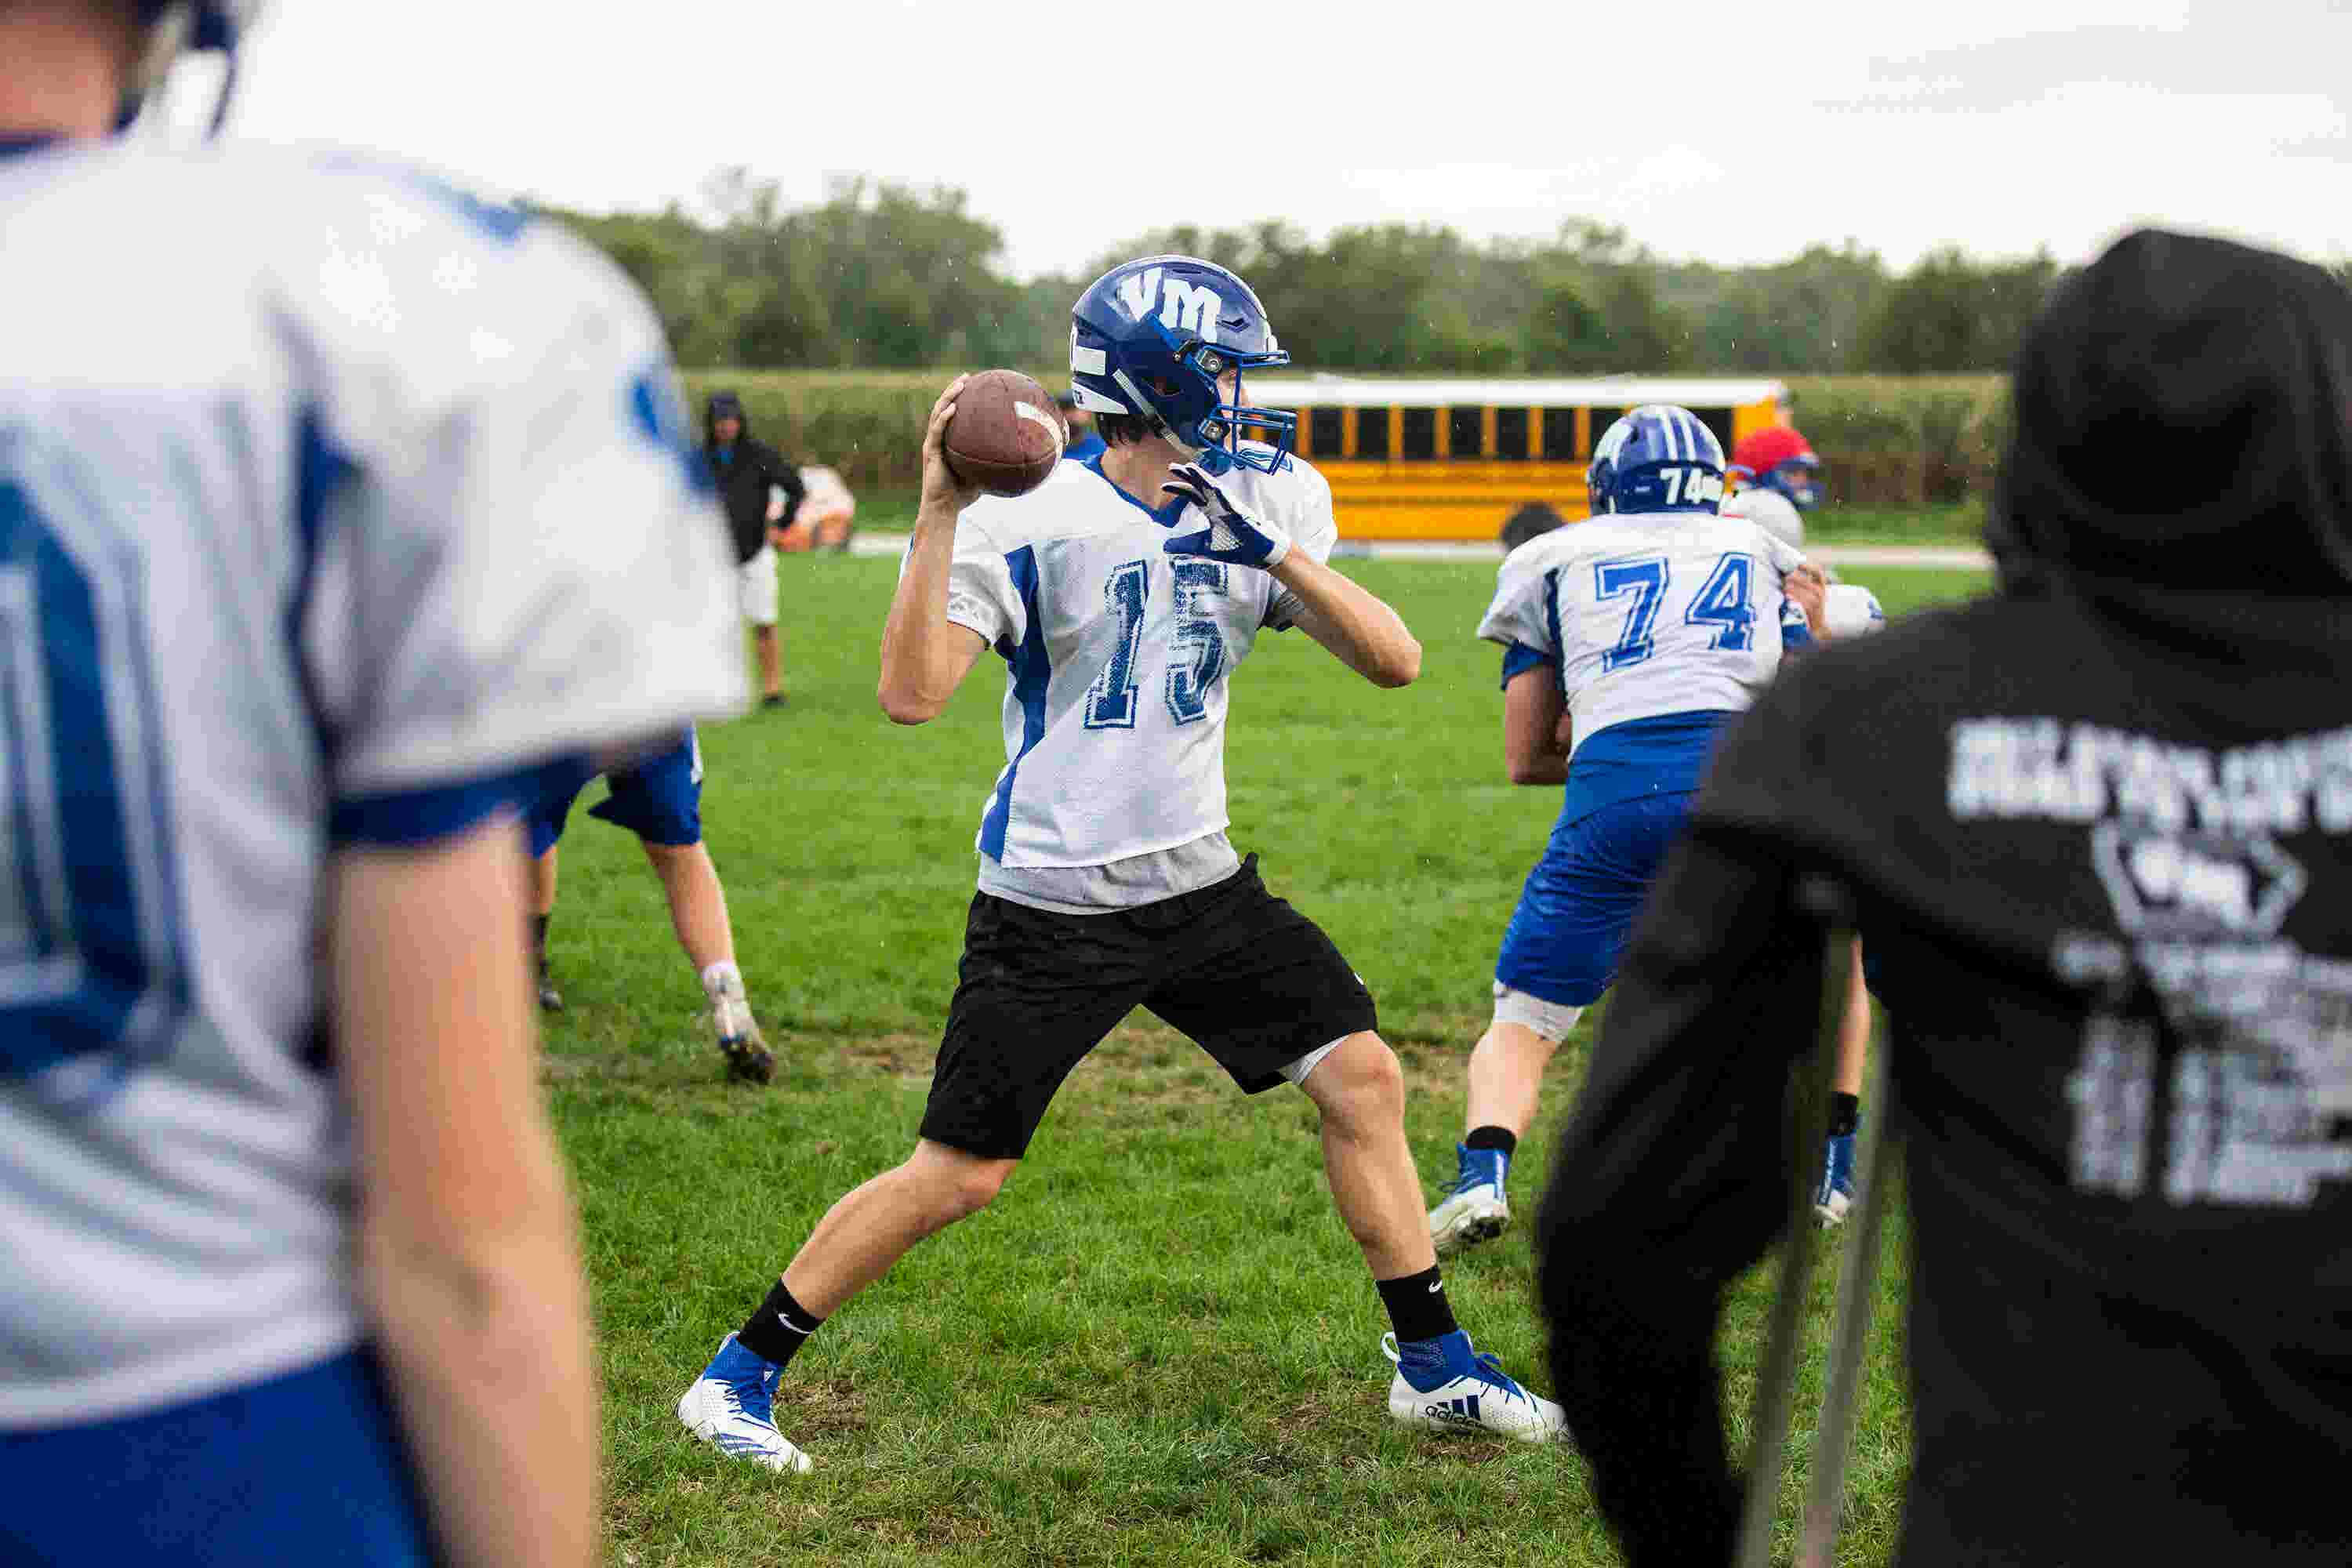 After brother's death, Van Meter quarterback tries to focus on football